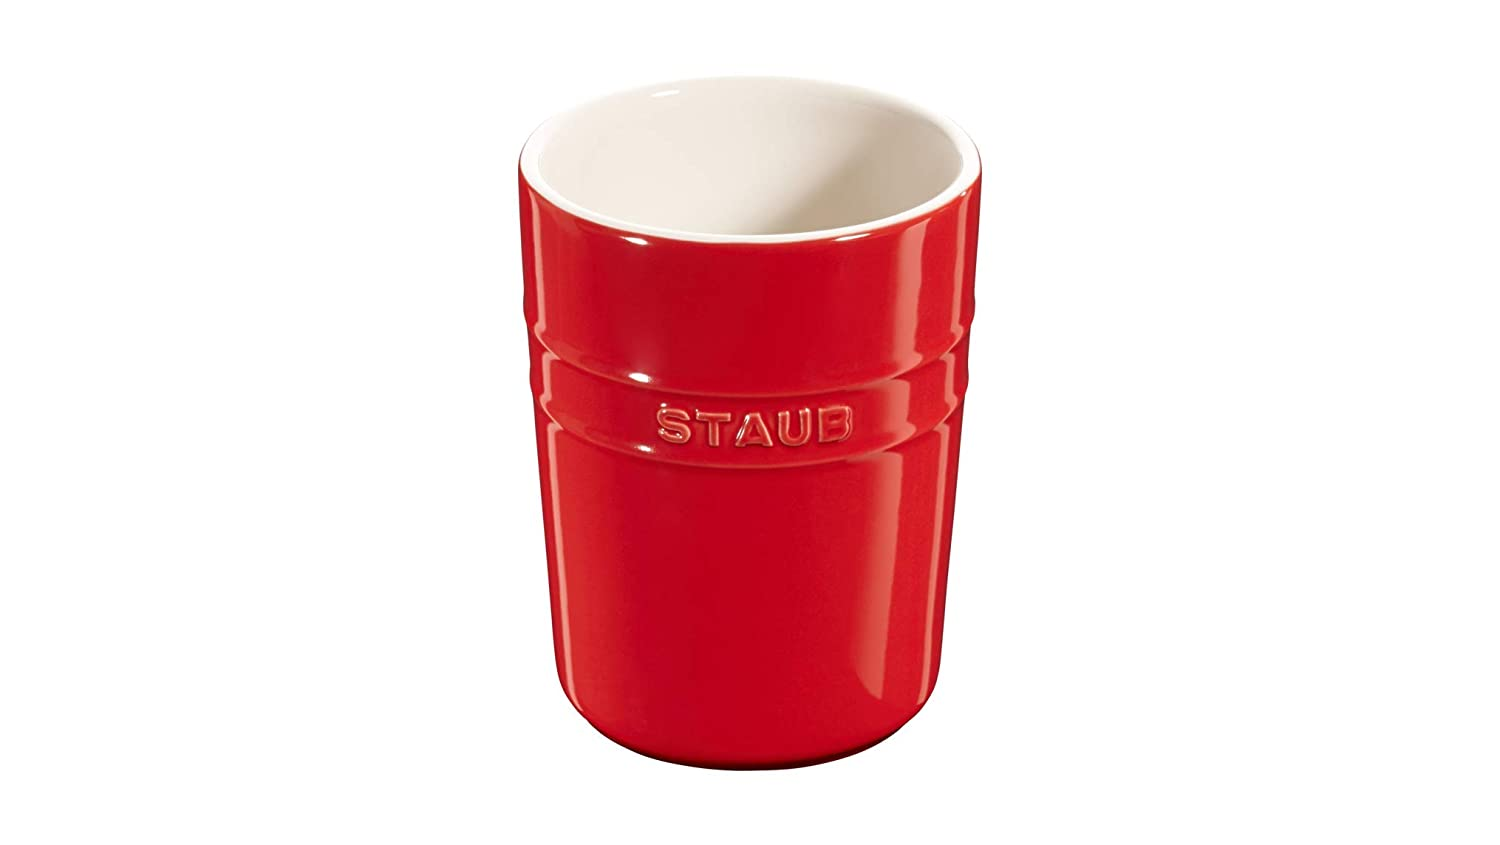 ZWILLING J.A HENCKELS 40511-577 Staub Ceramic Utensil Holder with Silicone Mat Red